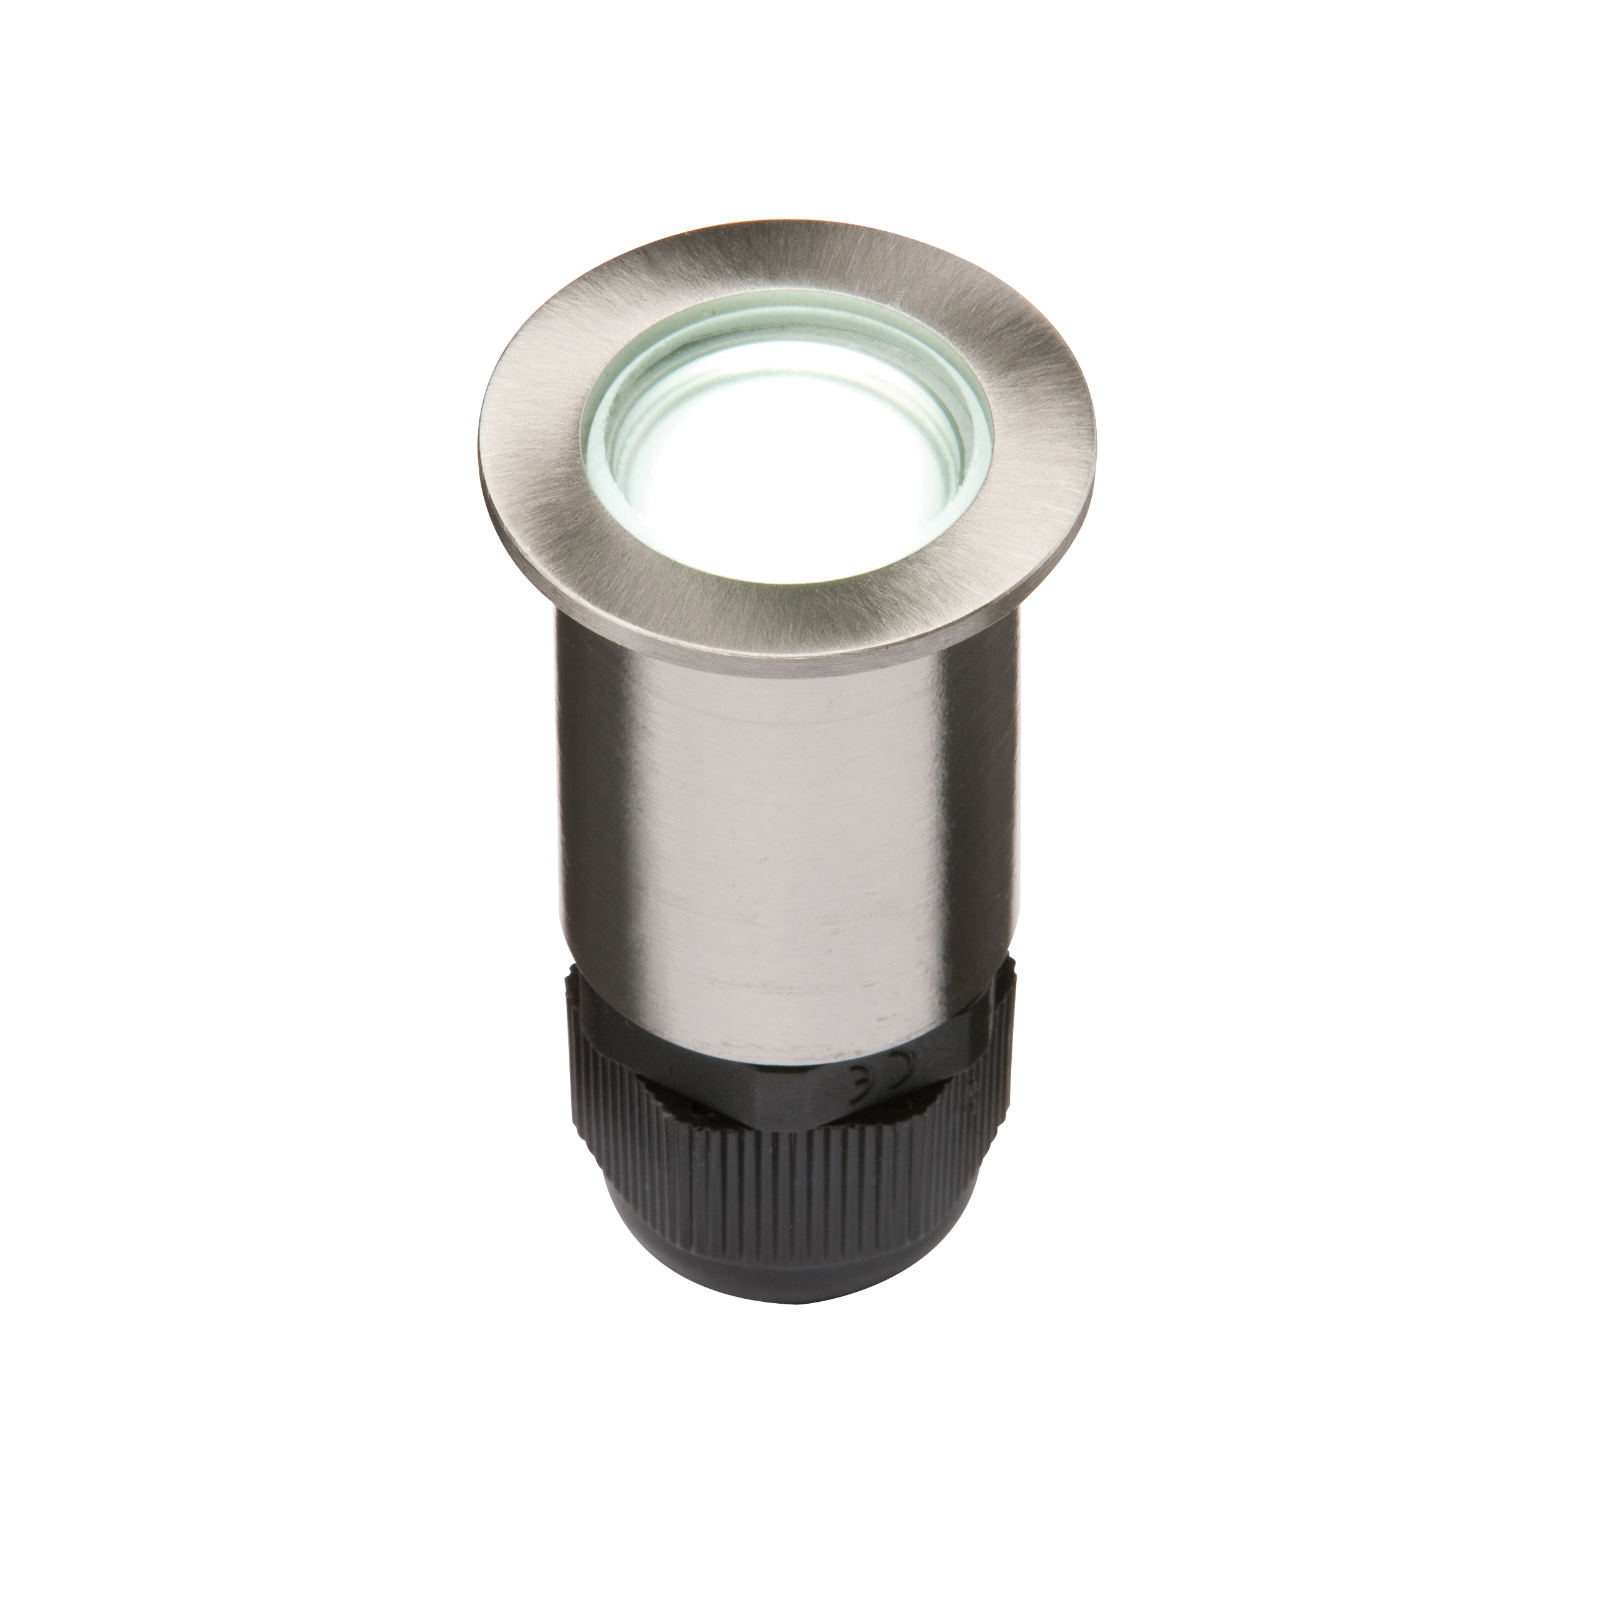 IP67 Small Stainless Steel Ground Fitting 4 x White LED